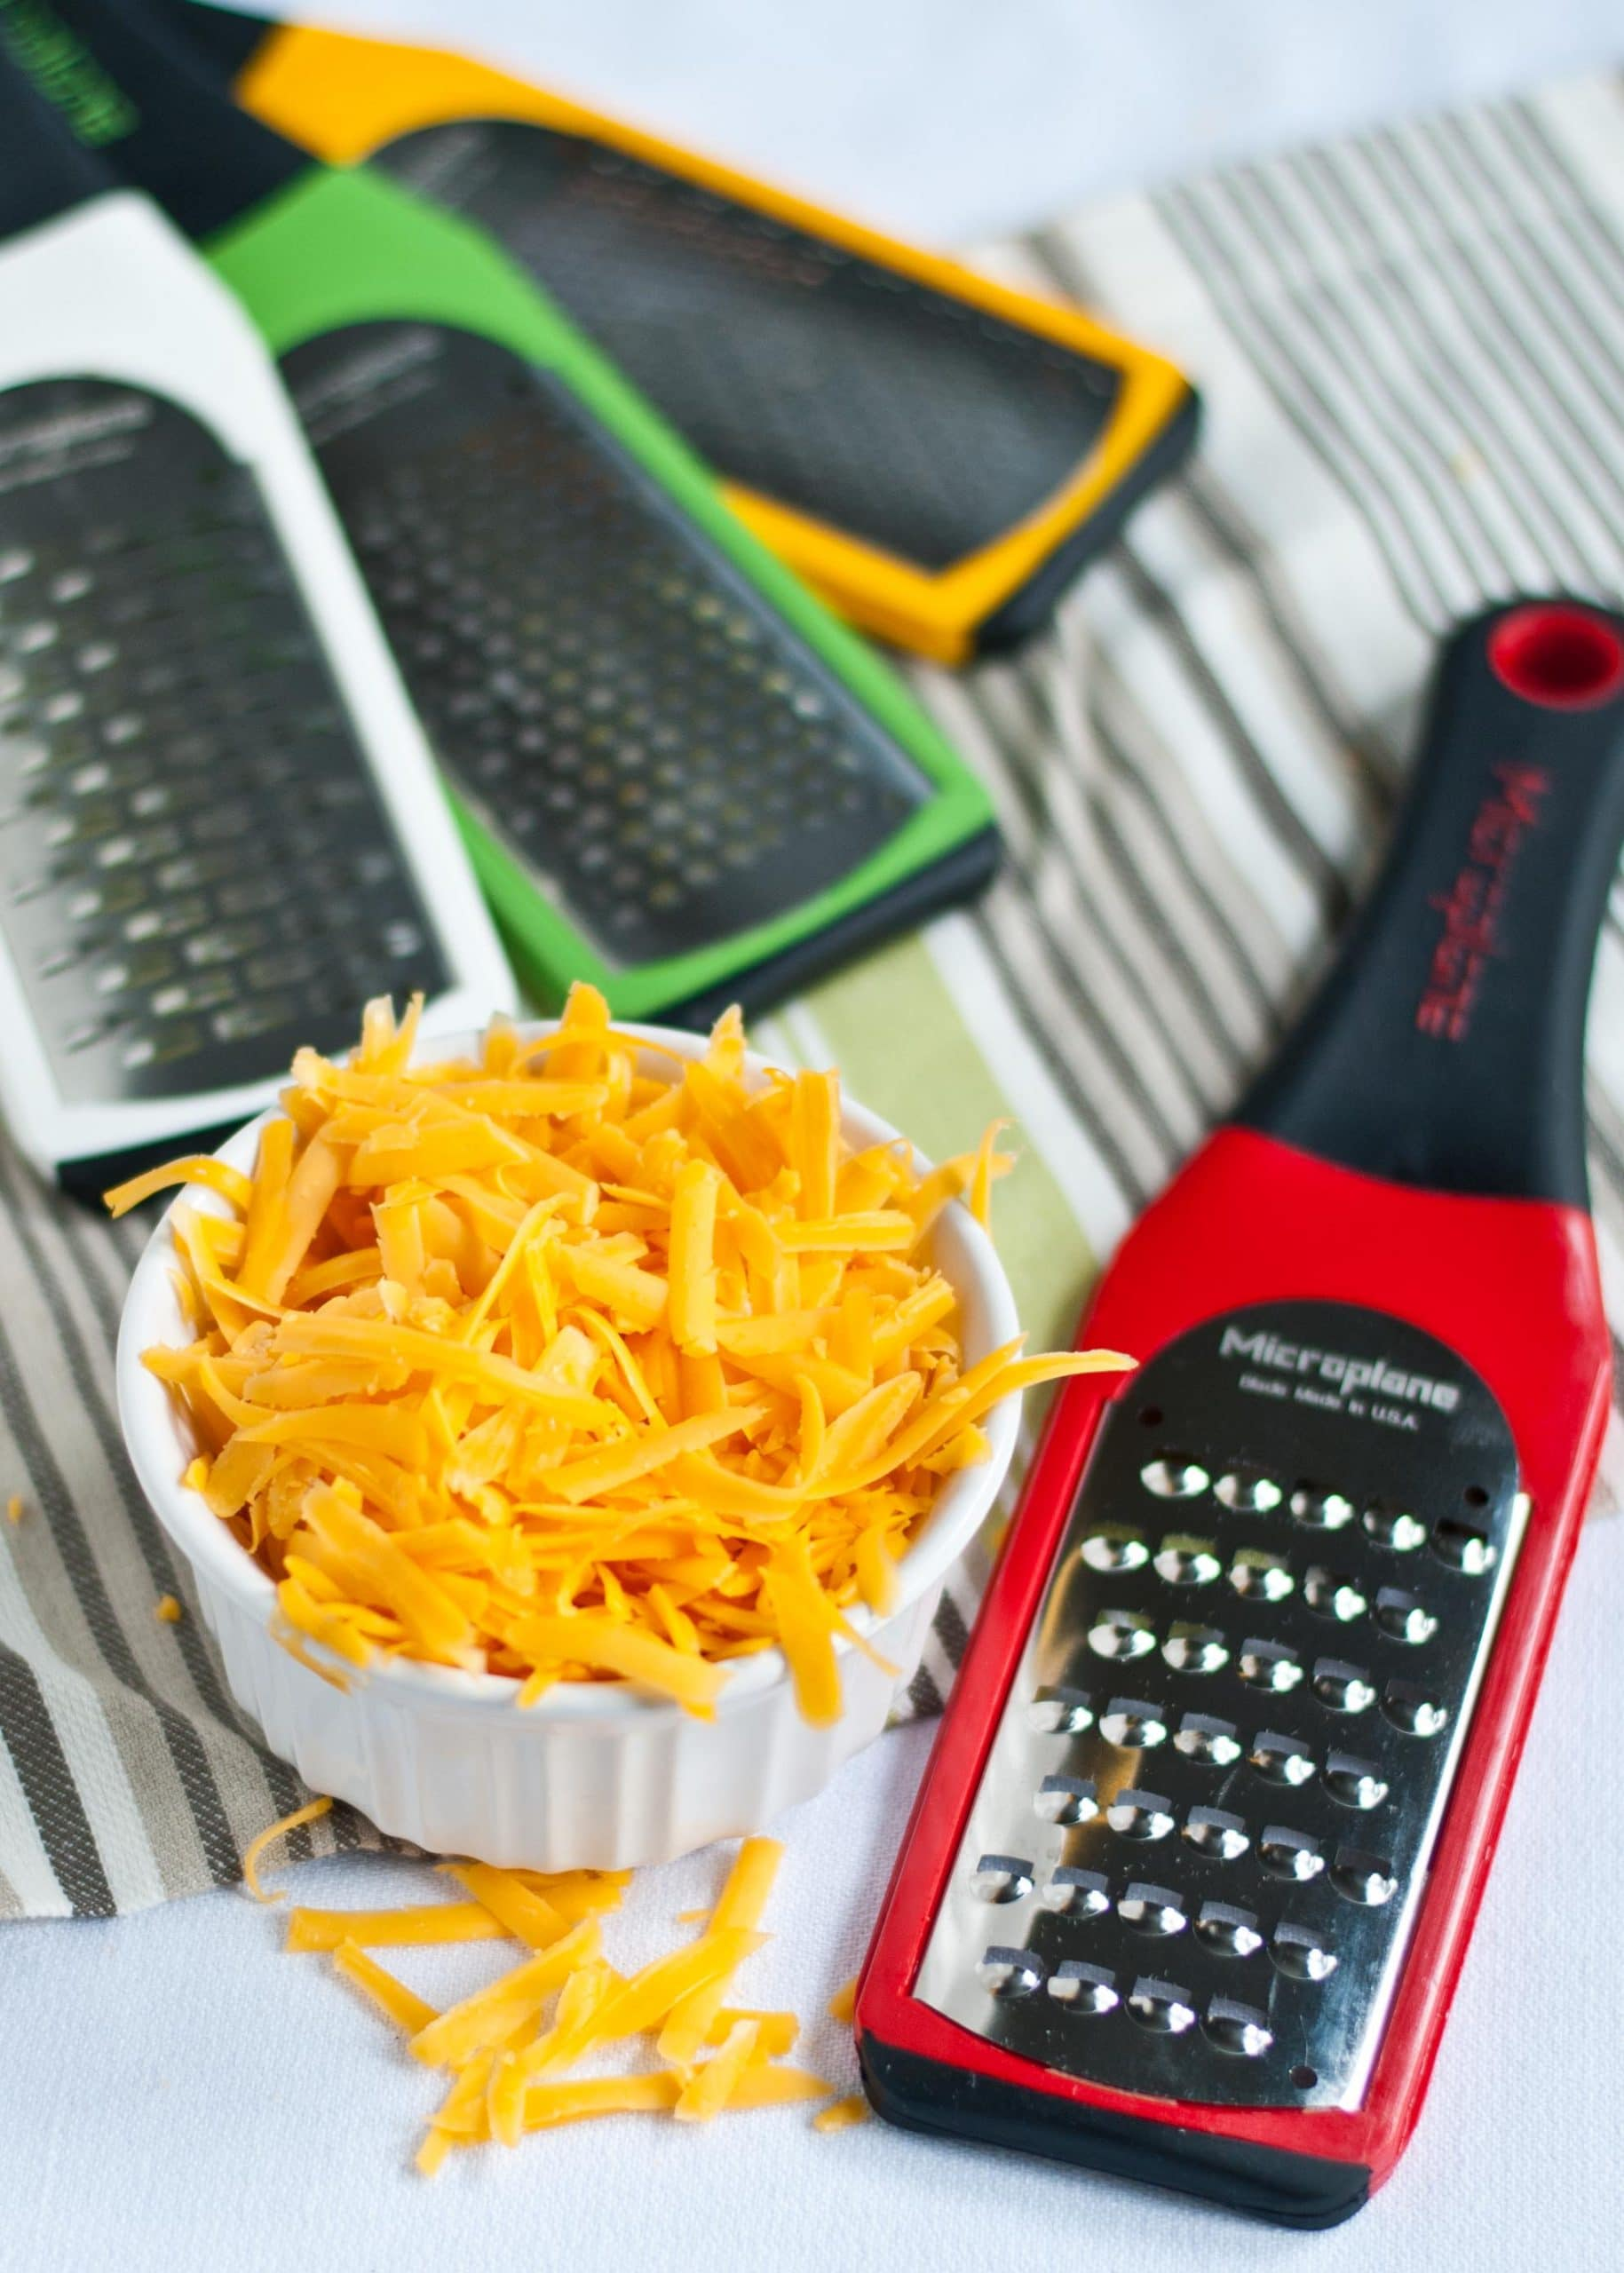 Three Cheese Lasagna Dip + Microplane Grater Giveaway | Neighborfoodblog.com